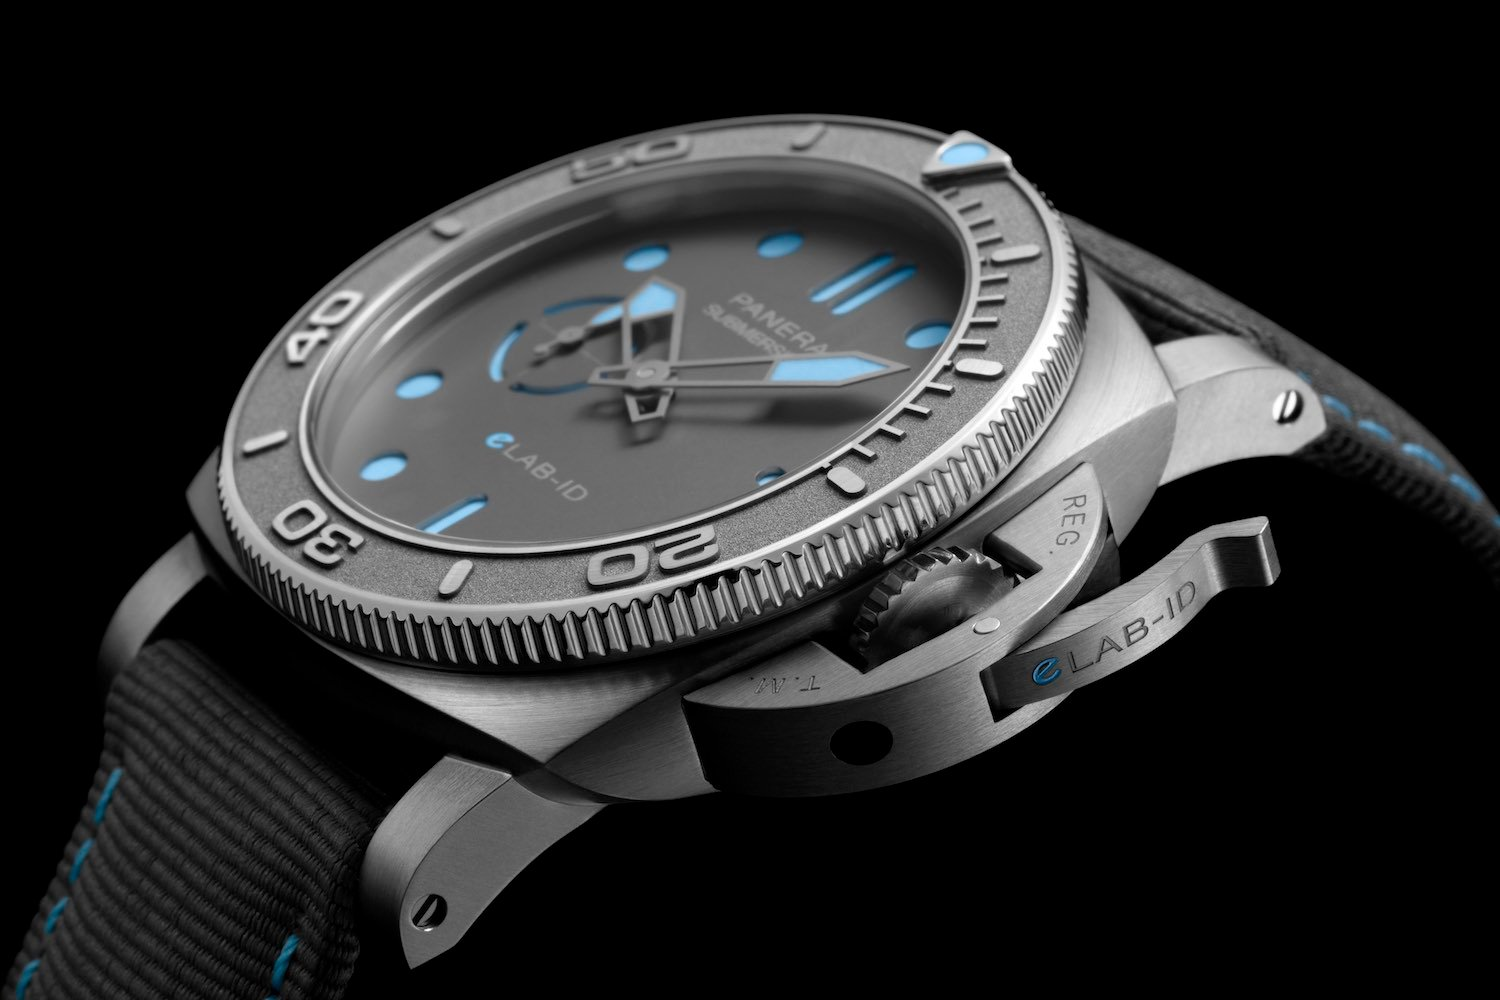 Watches and Wonders: Panerai celebra su espíritu deportivo